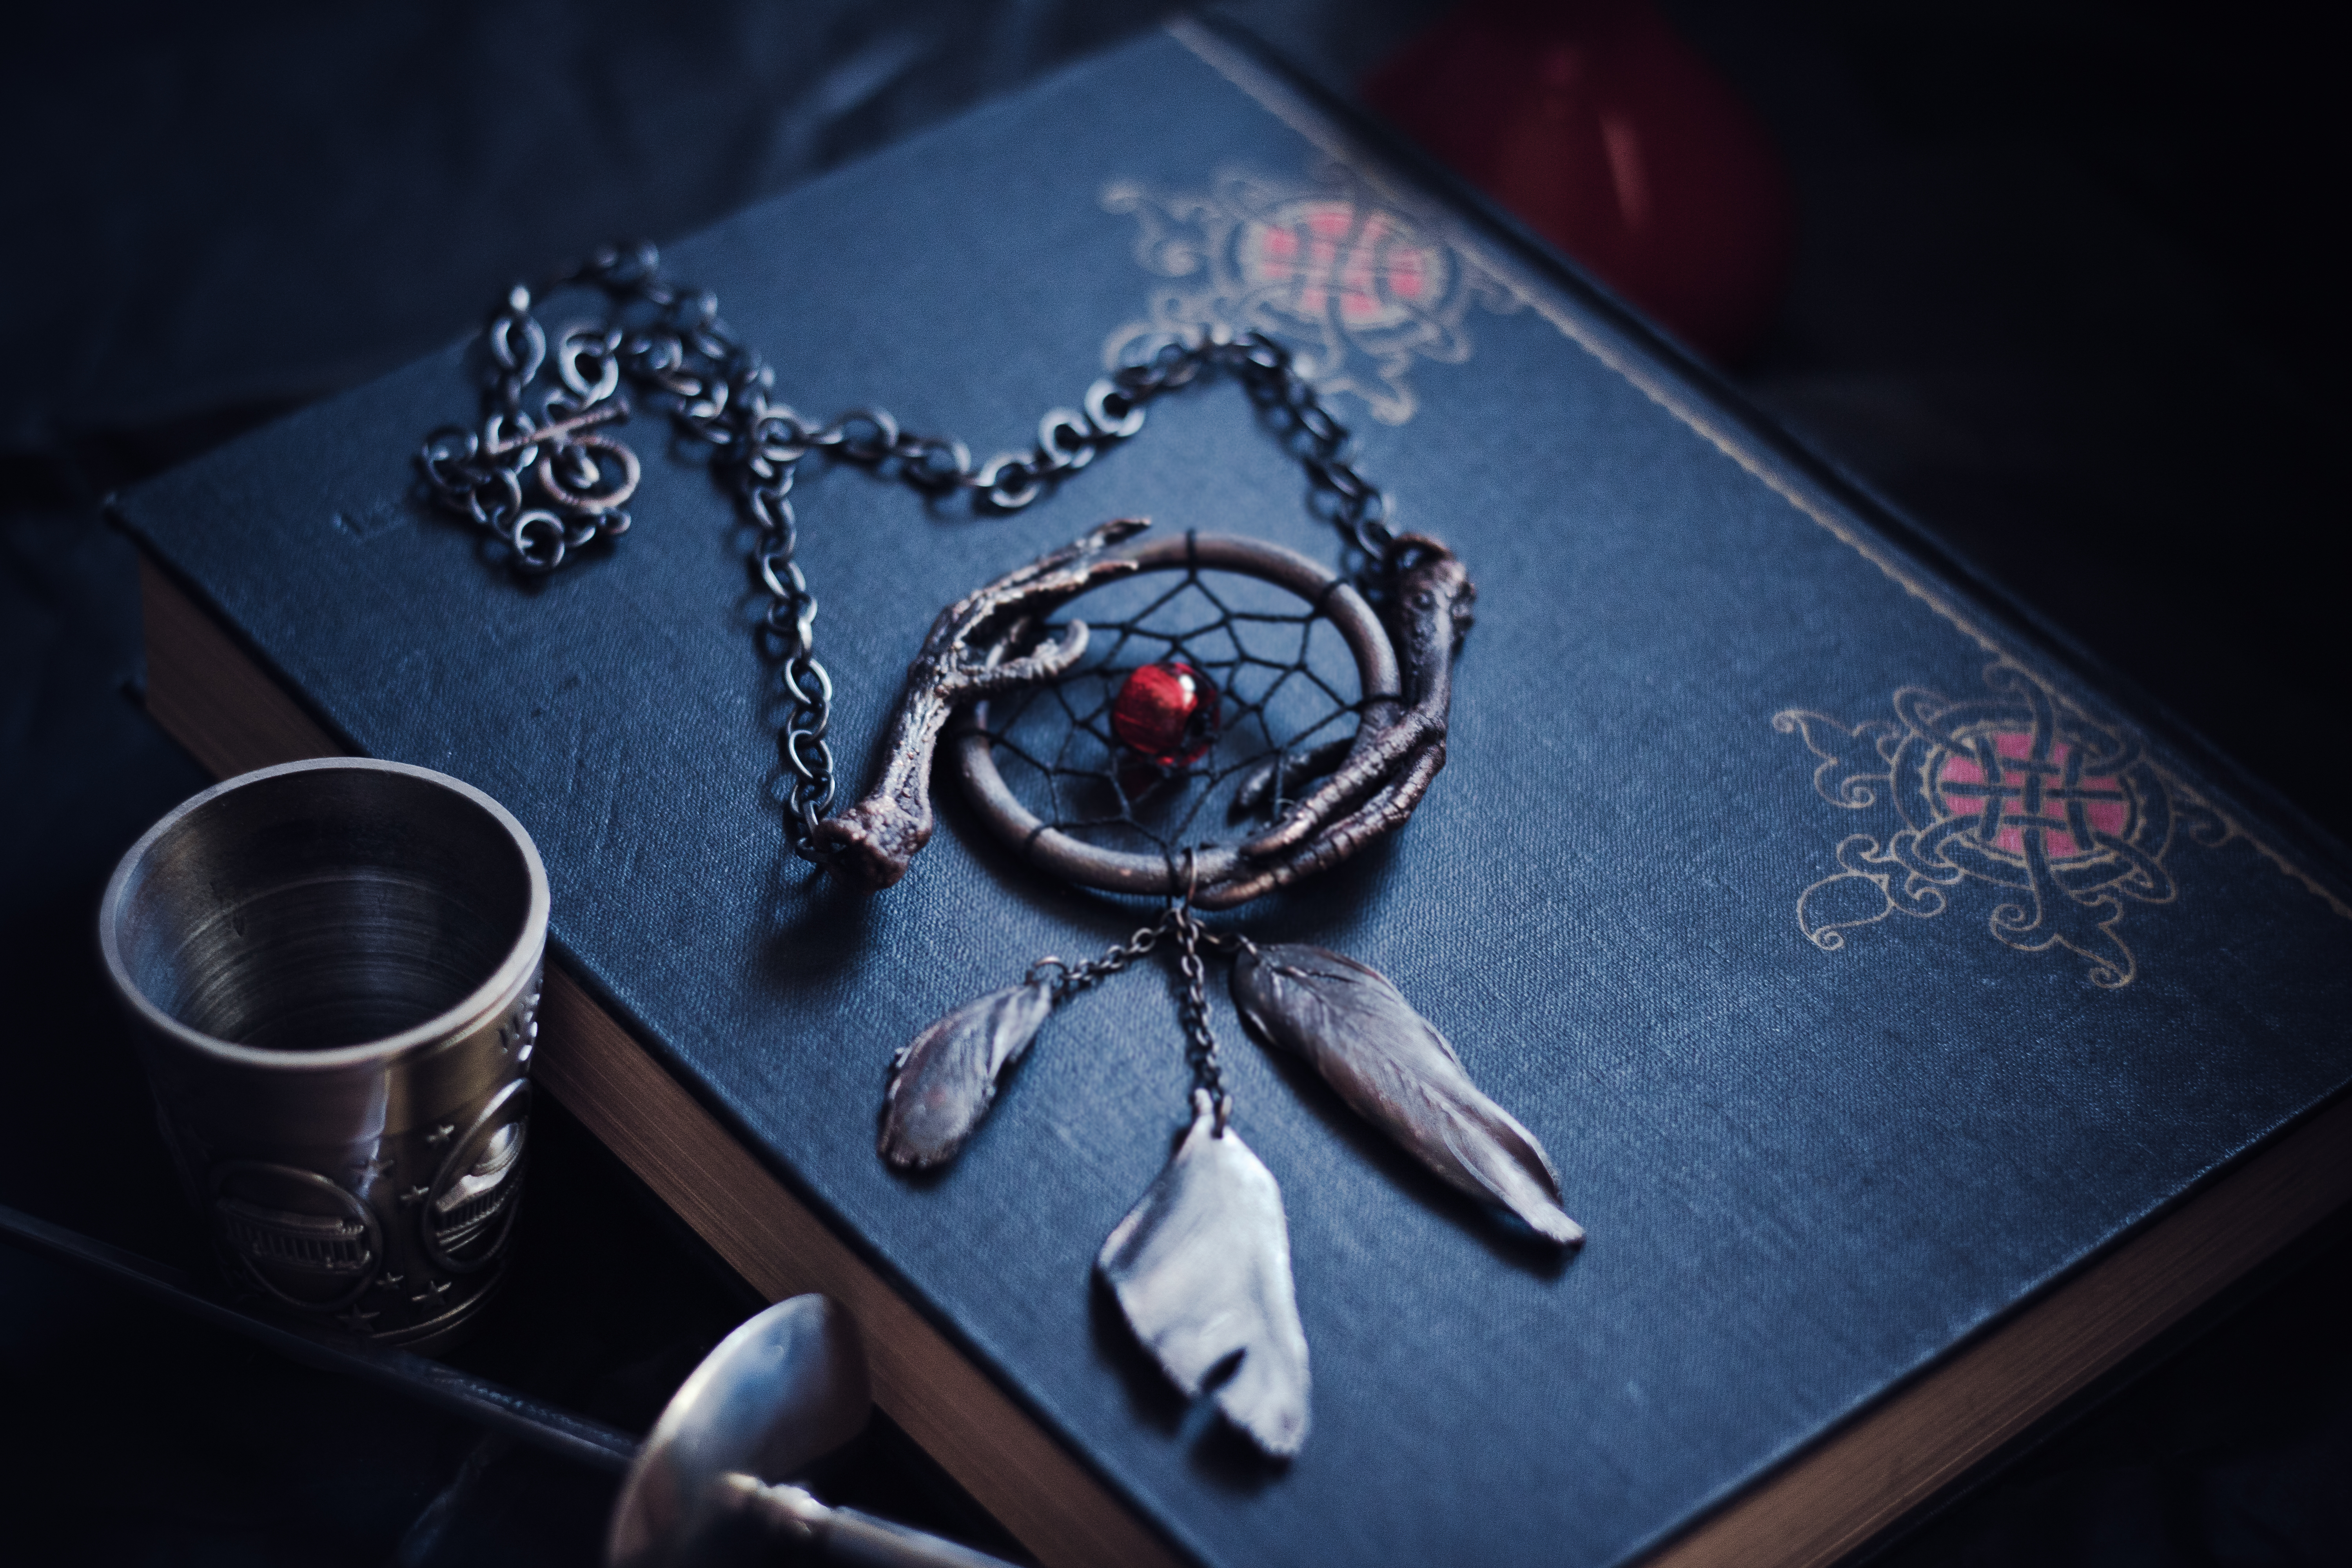 Tools For Young Witches: Magic Wands, Altar Fans And Claw Jewelry